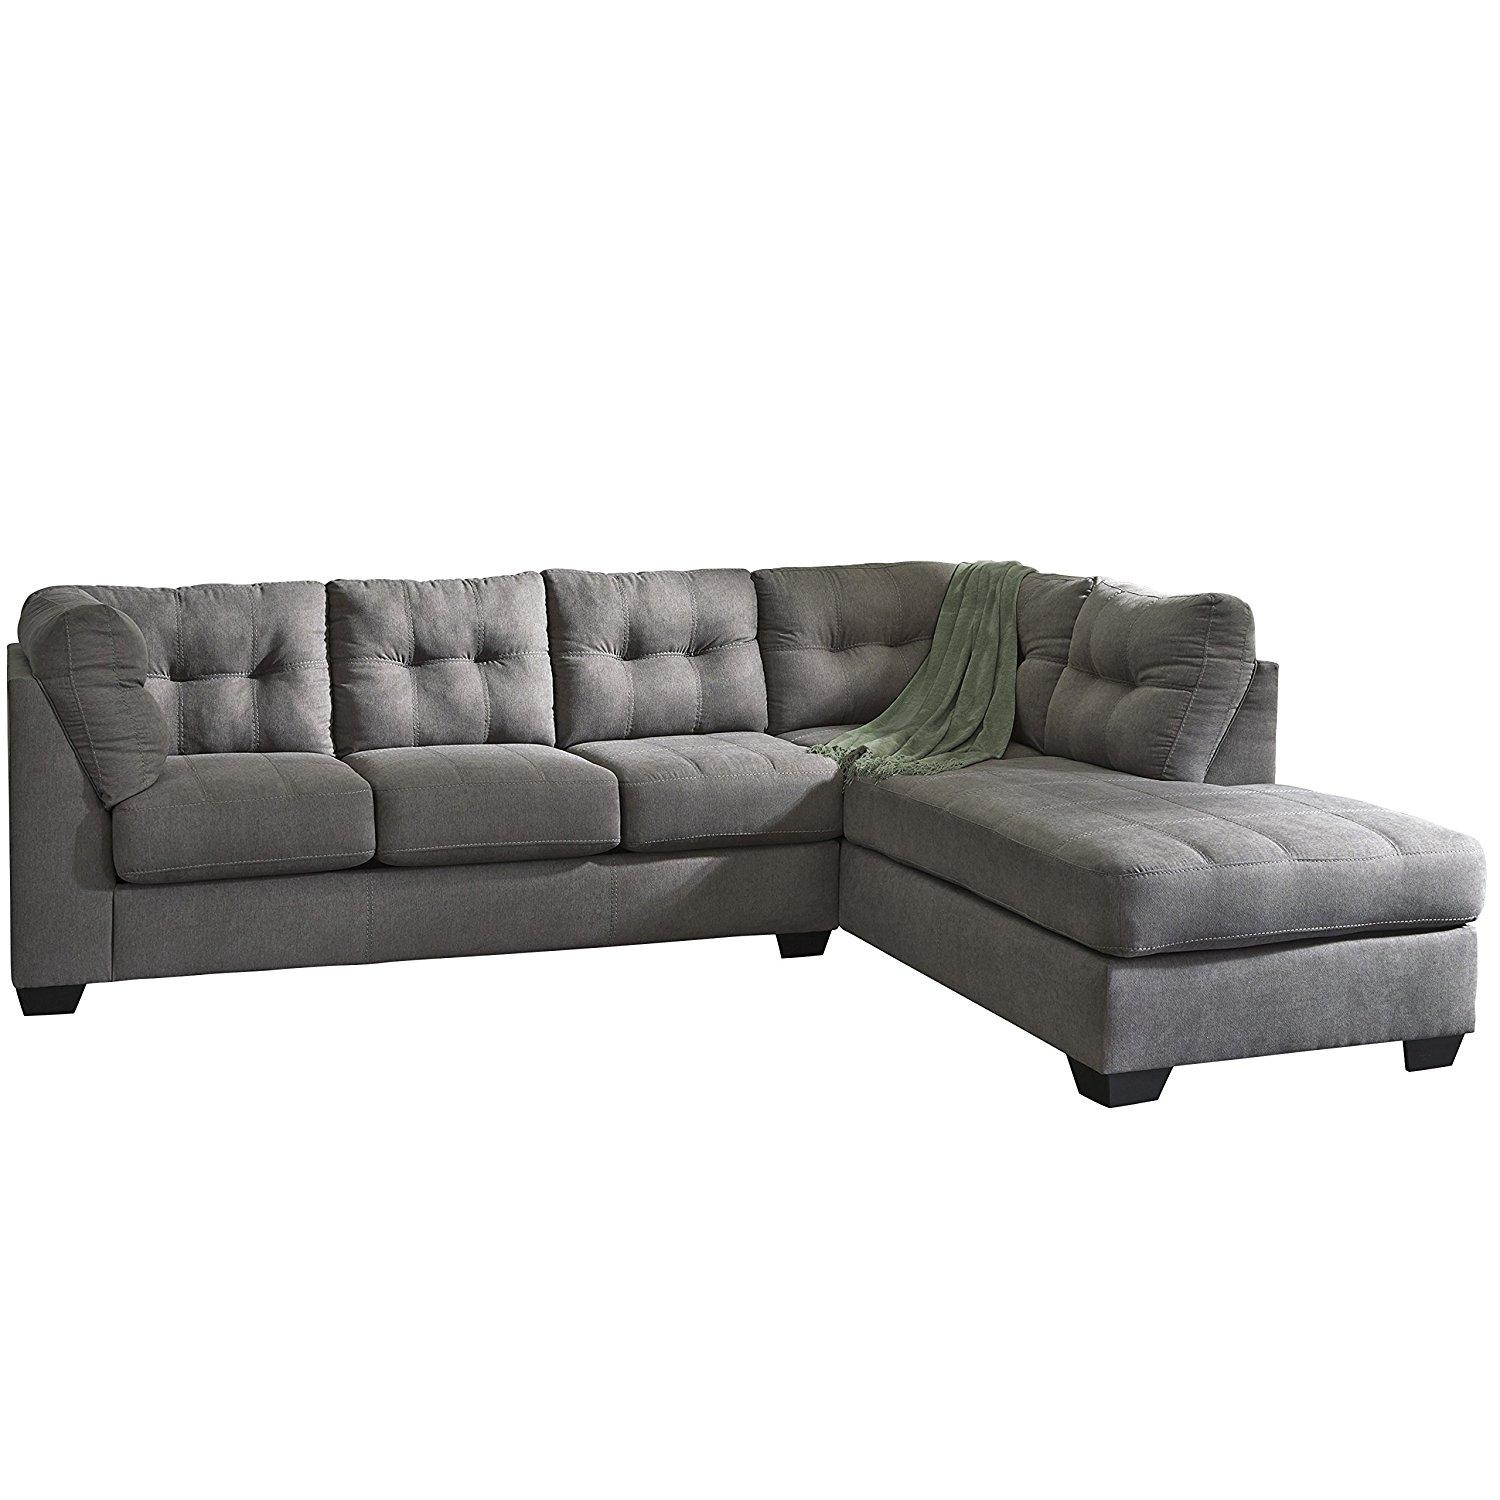 Sofas : Magnificent 2 Piece Sectional Sofa Sectional Couch With With Regard To Small 2 Piece Sectional Sofas (Image 19 of 23)